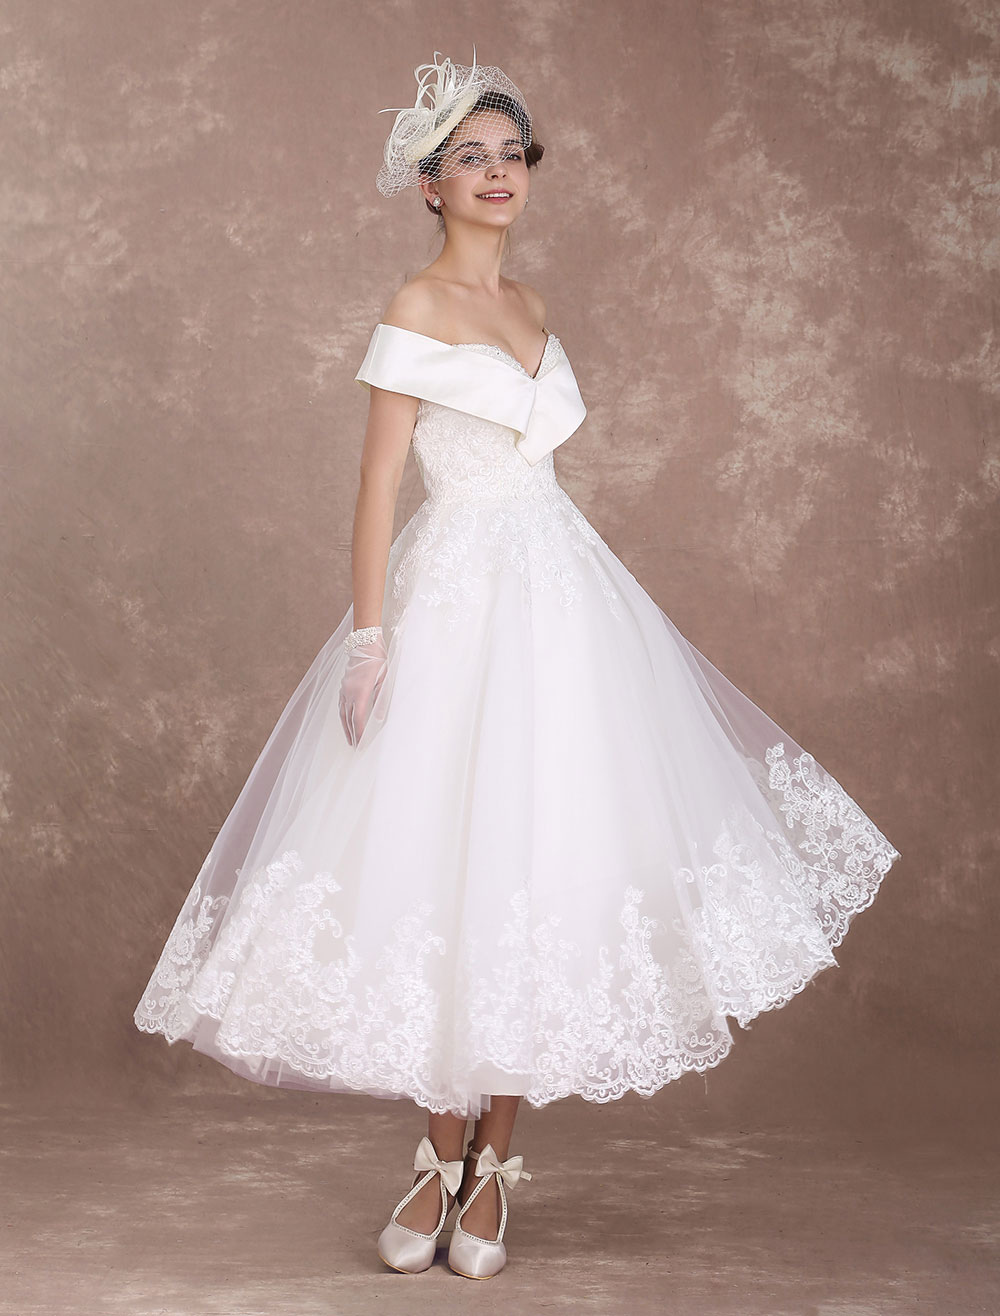 Vintage wedding dresses off the shoulder short bridal for Vintage summer wedding dresses